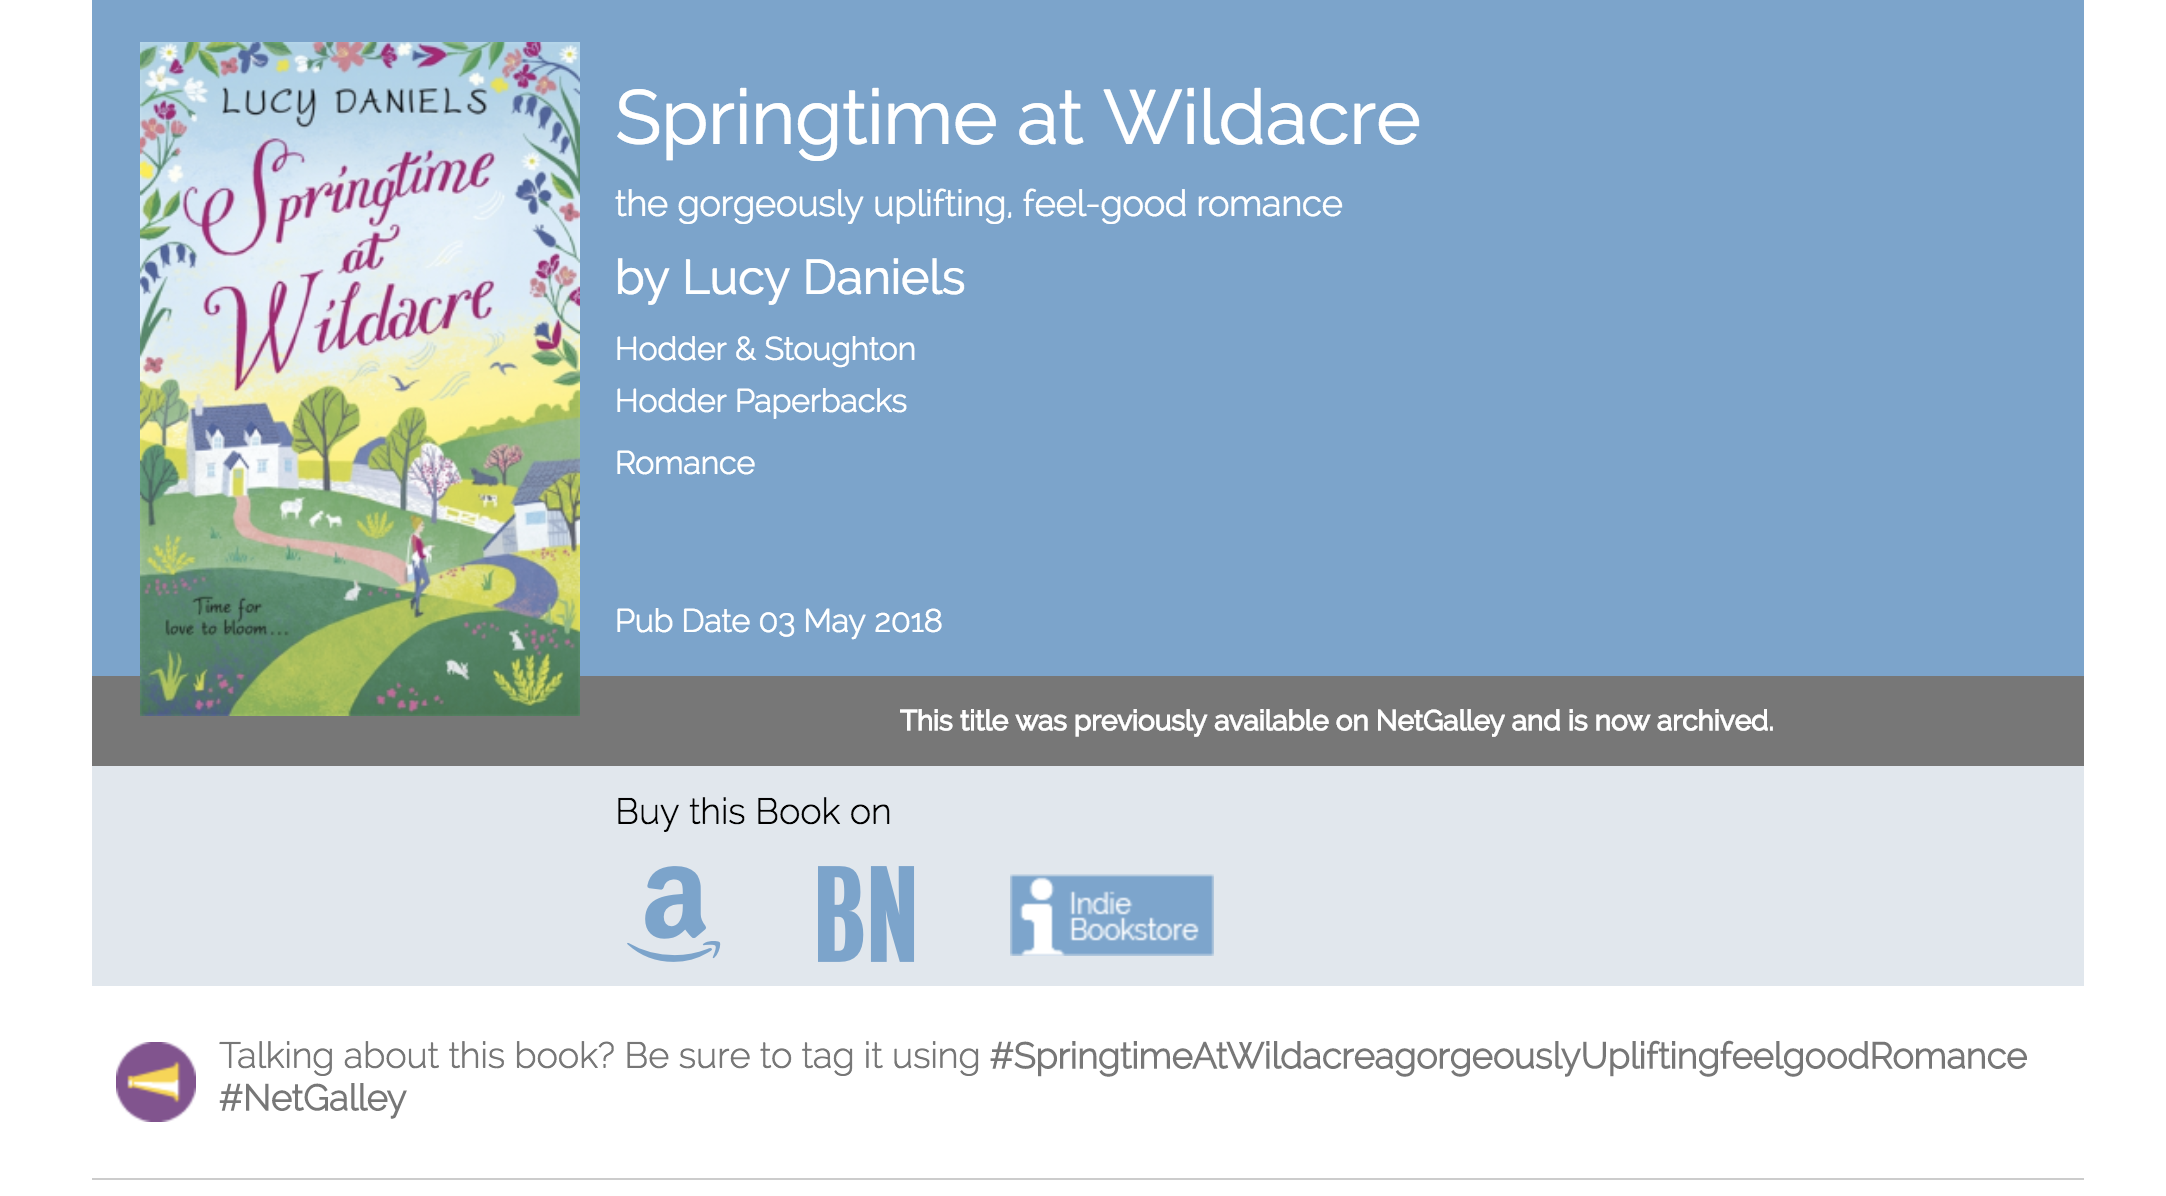 Springtime at Wildacre: the gorgeously uplifting, feel-good romance